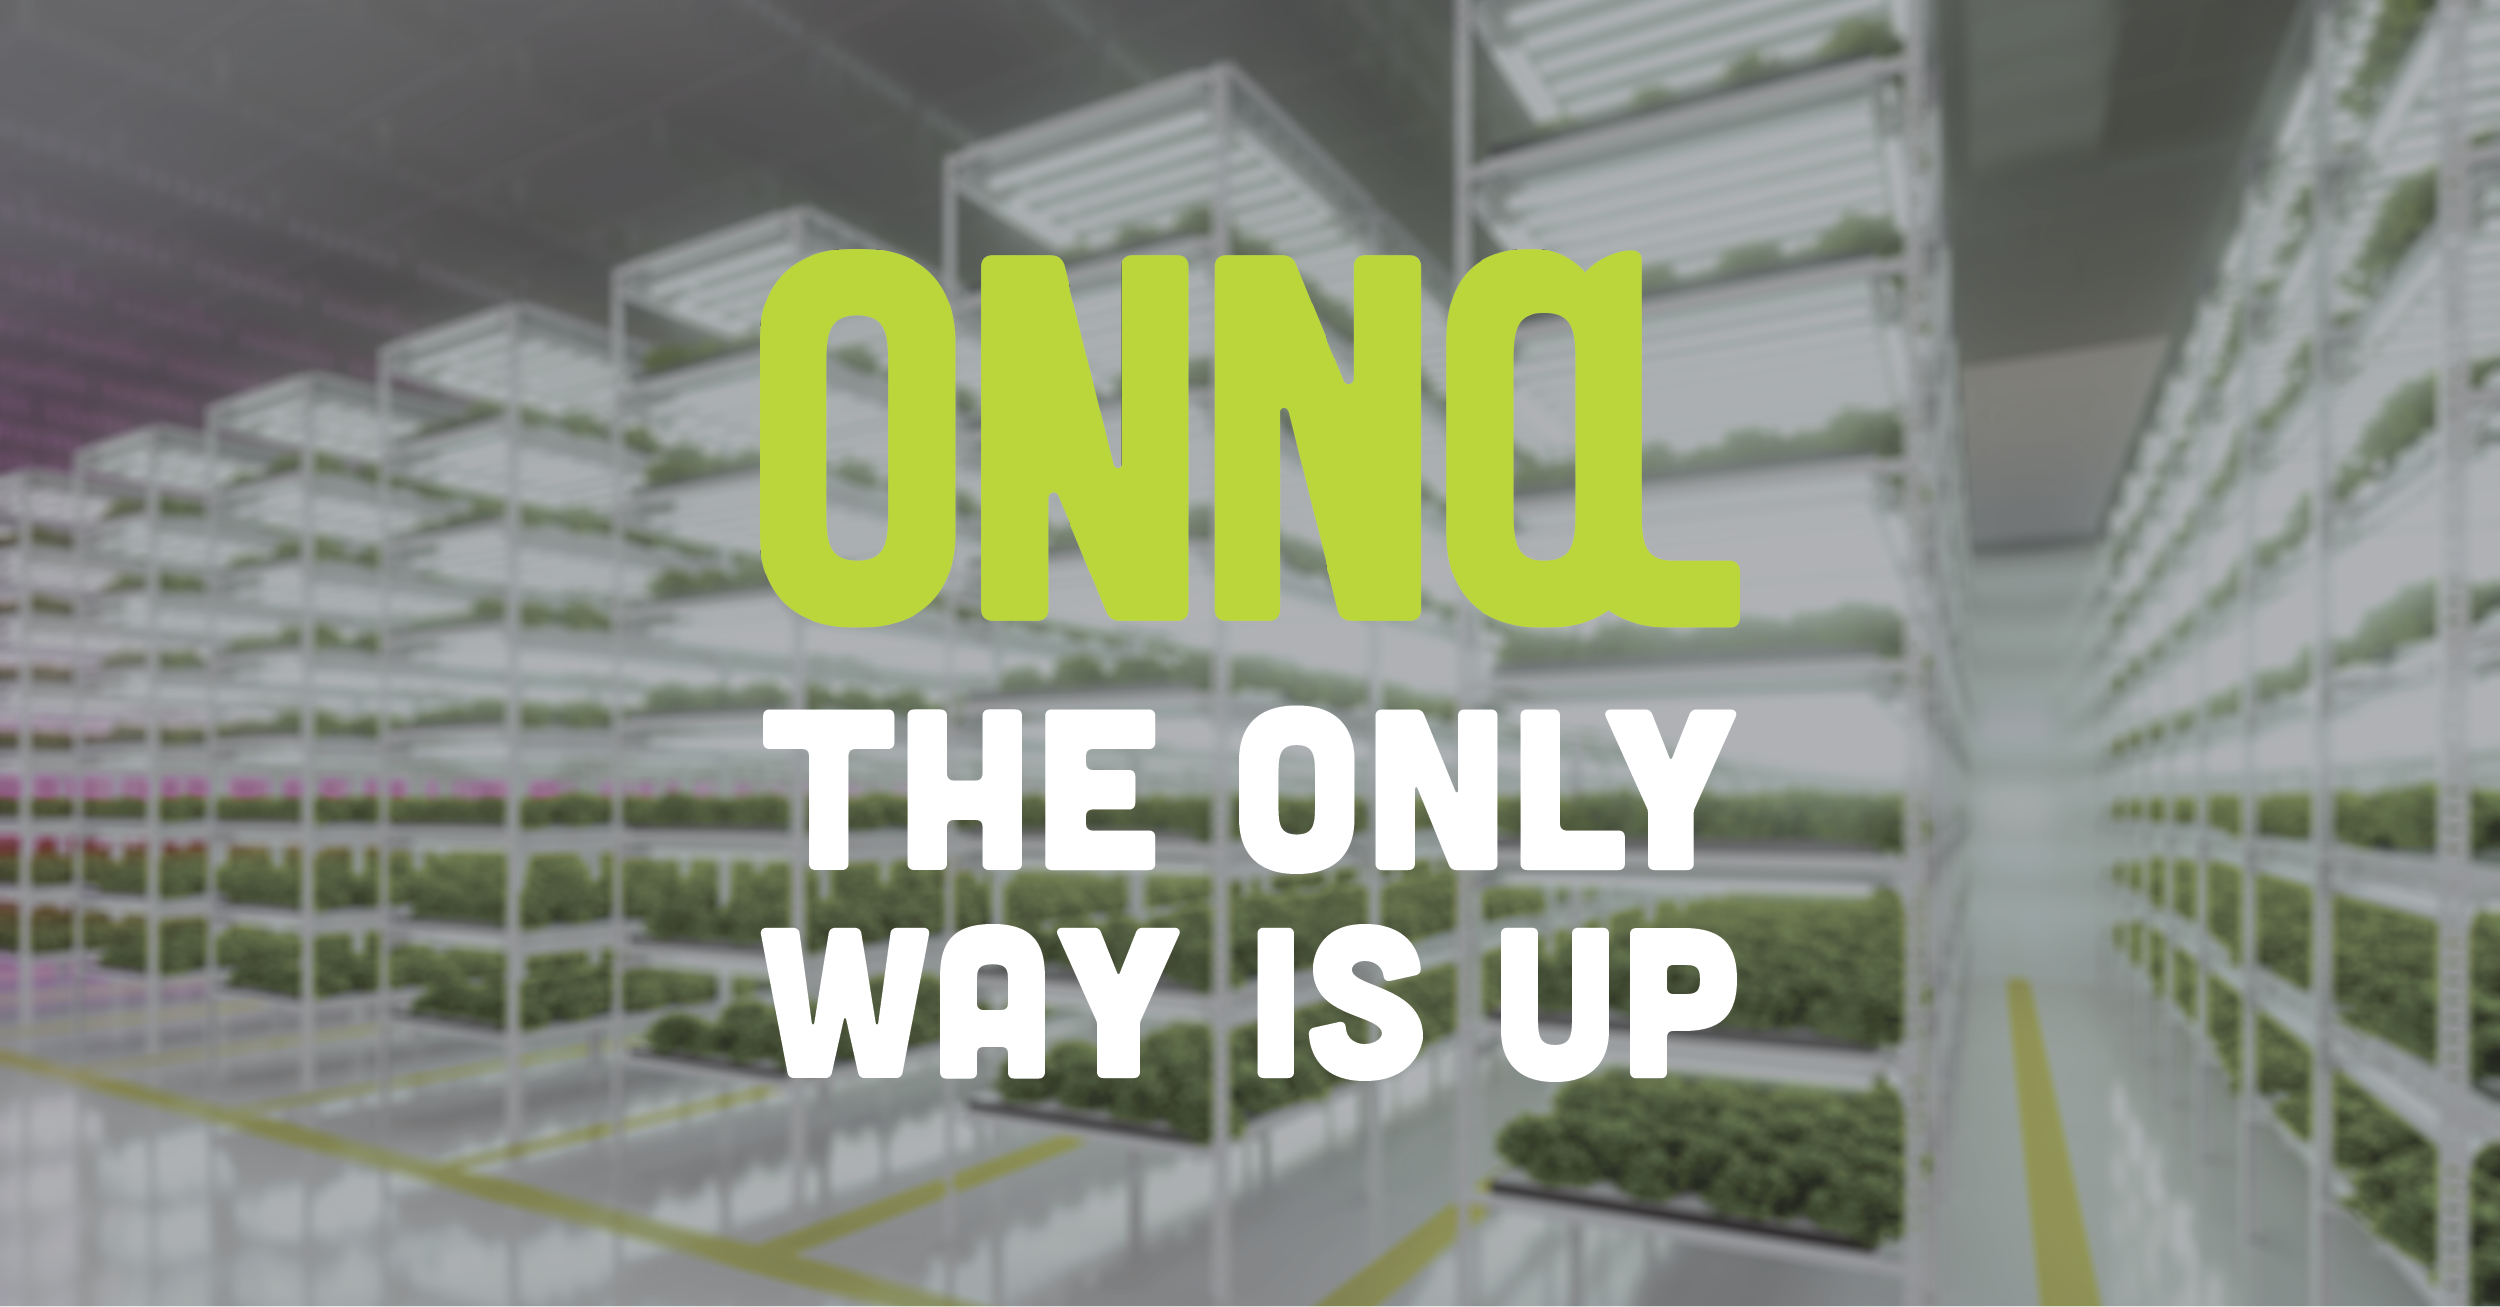 ONNA, The only way is up!